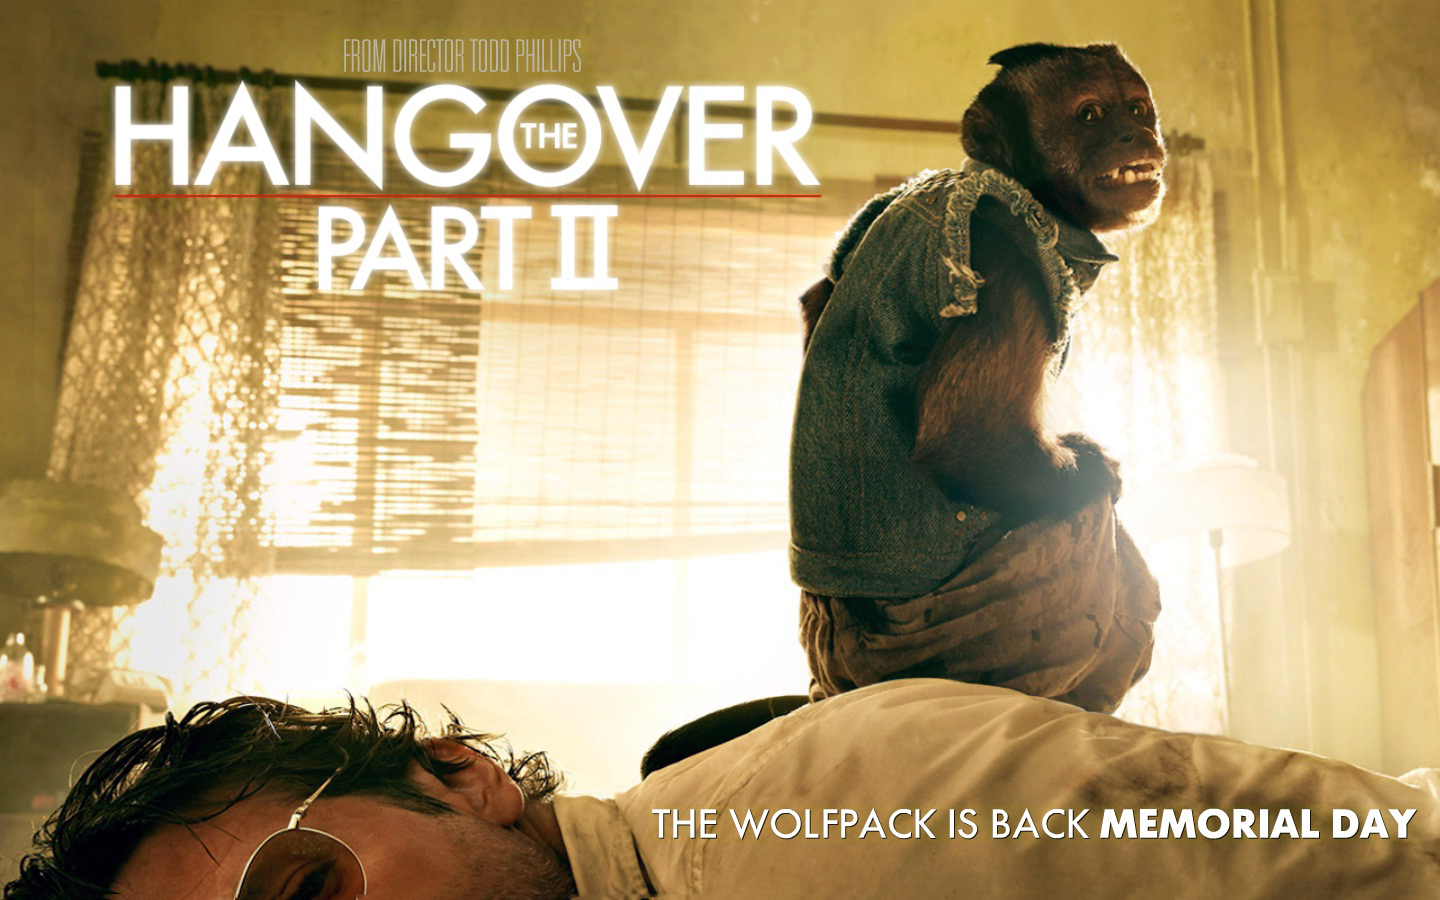 ... 2011/06/The_Hangover_Part_II_Movie_Poster.jpg | Watched movie